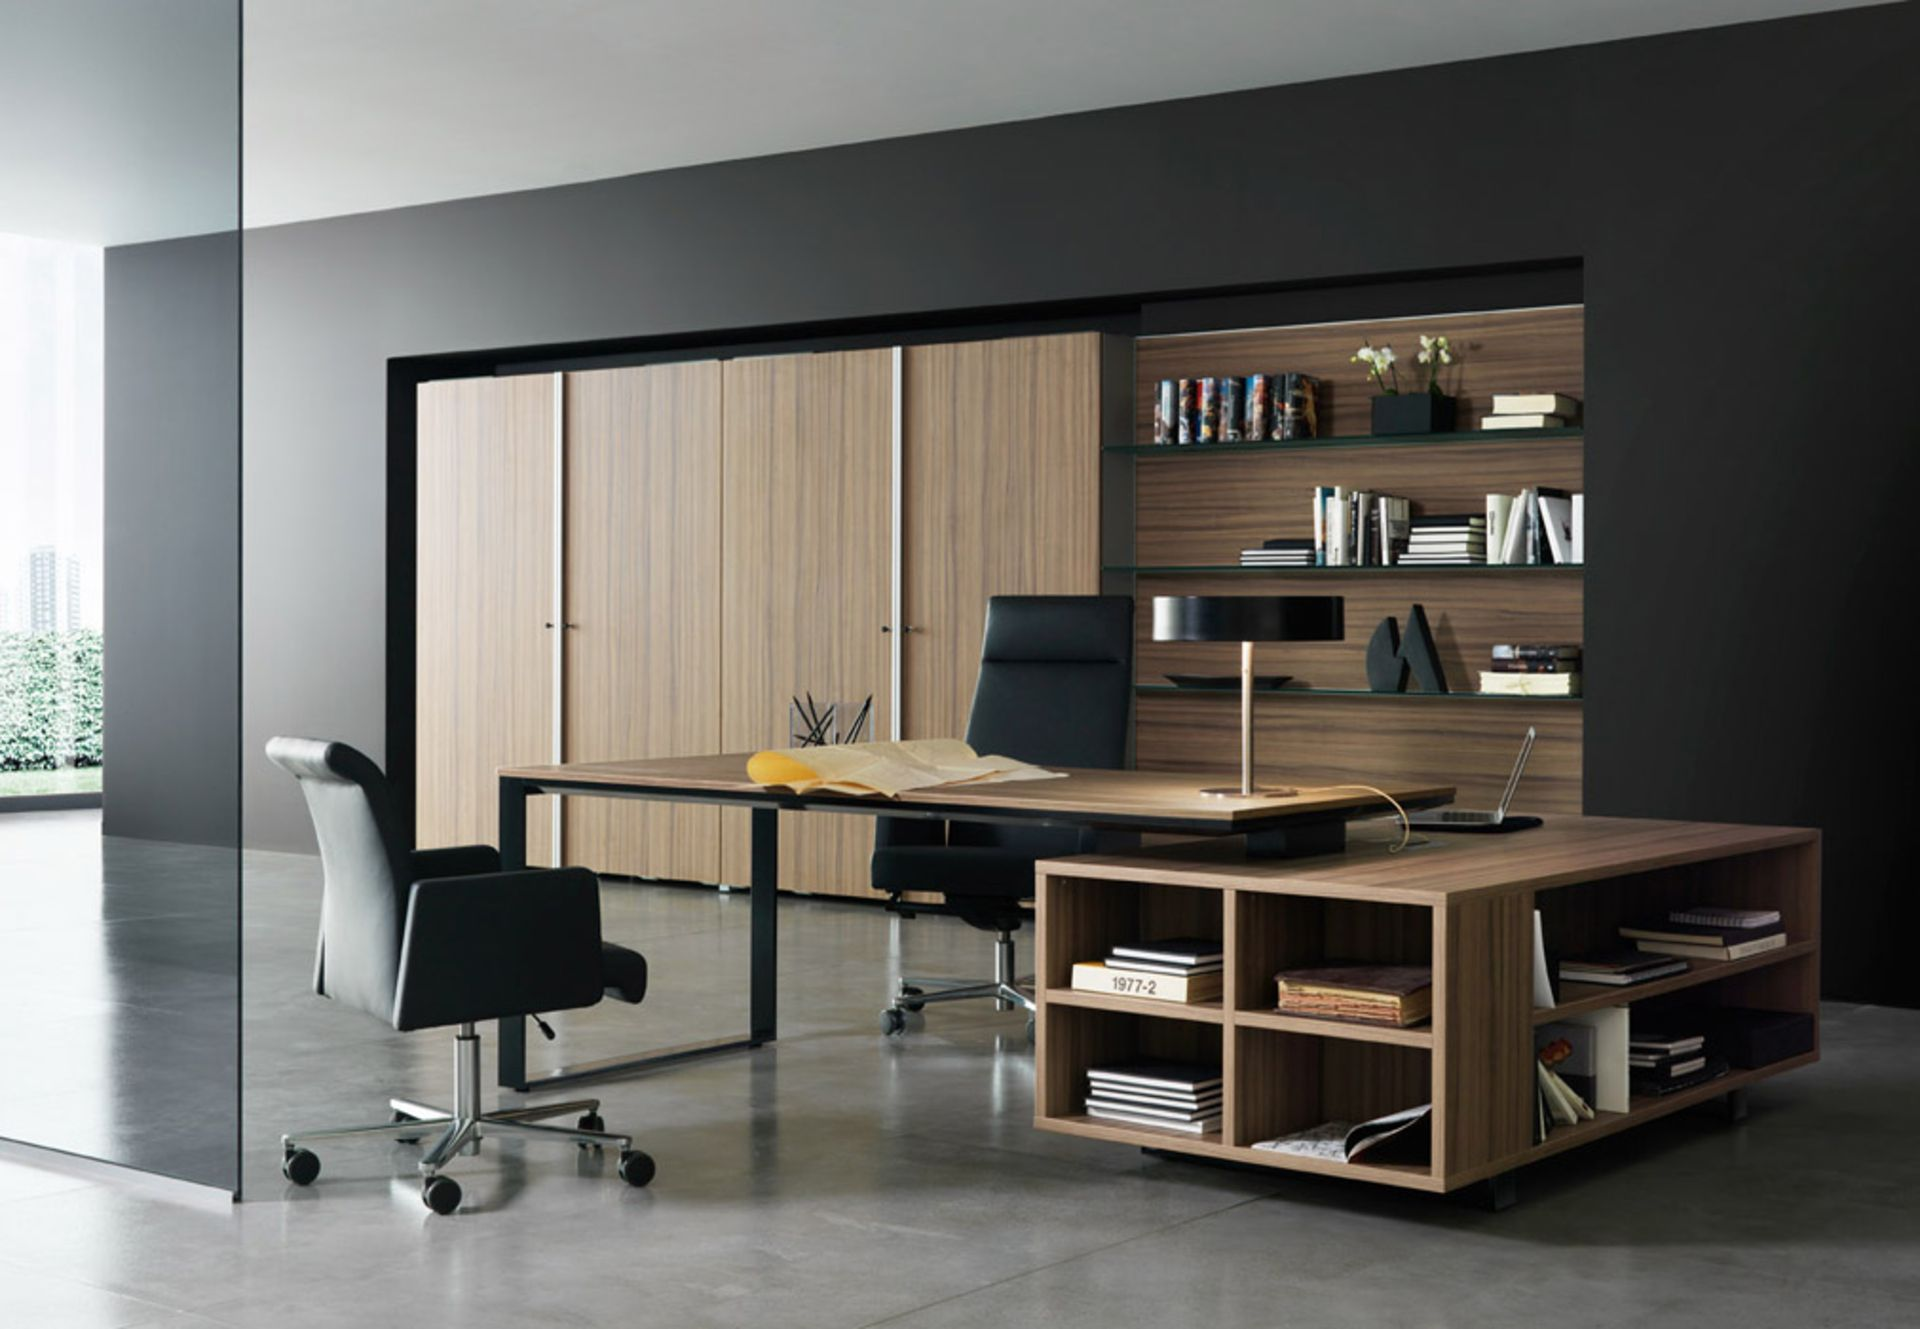 Charmant Office Cabin Ideas By Elevation .. We Are Interior Designers In Mumbai ,  Interior Designers